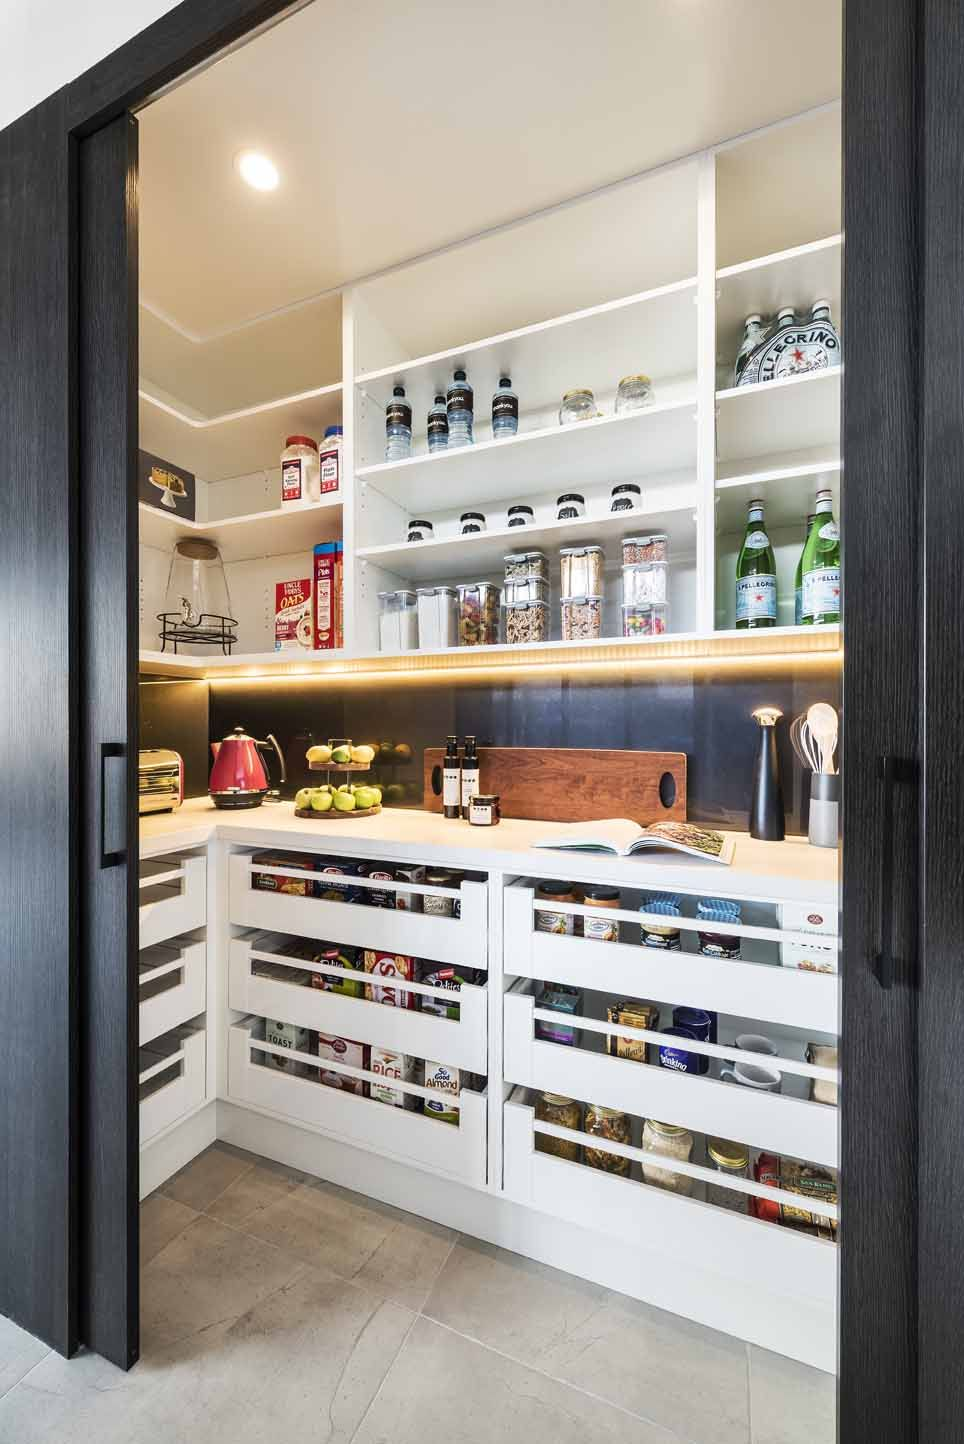 Kitchen storage meets style with Rosemount Kitchens #pantryshelving